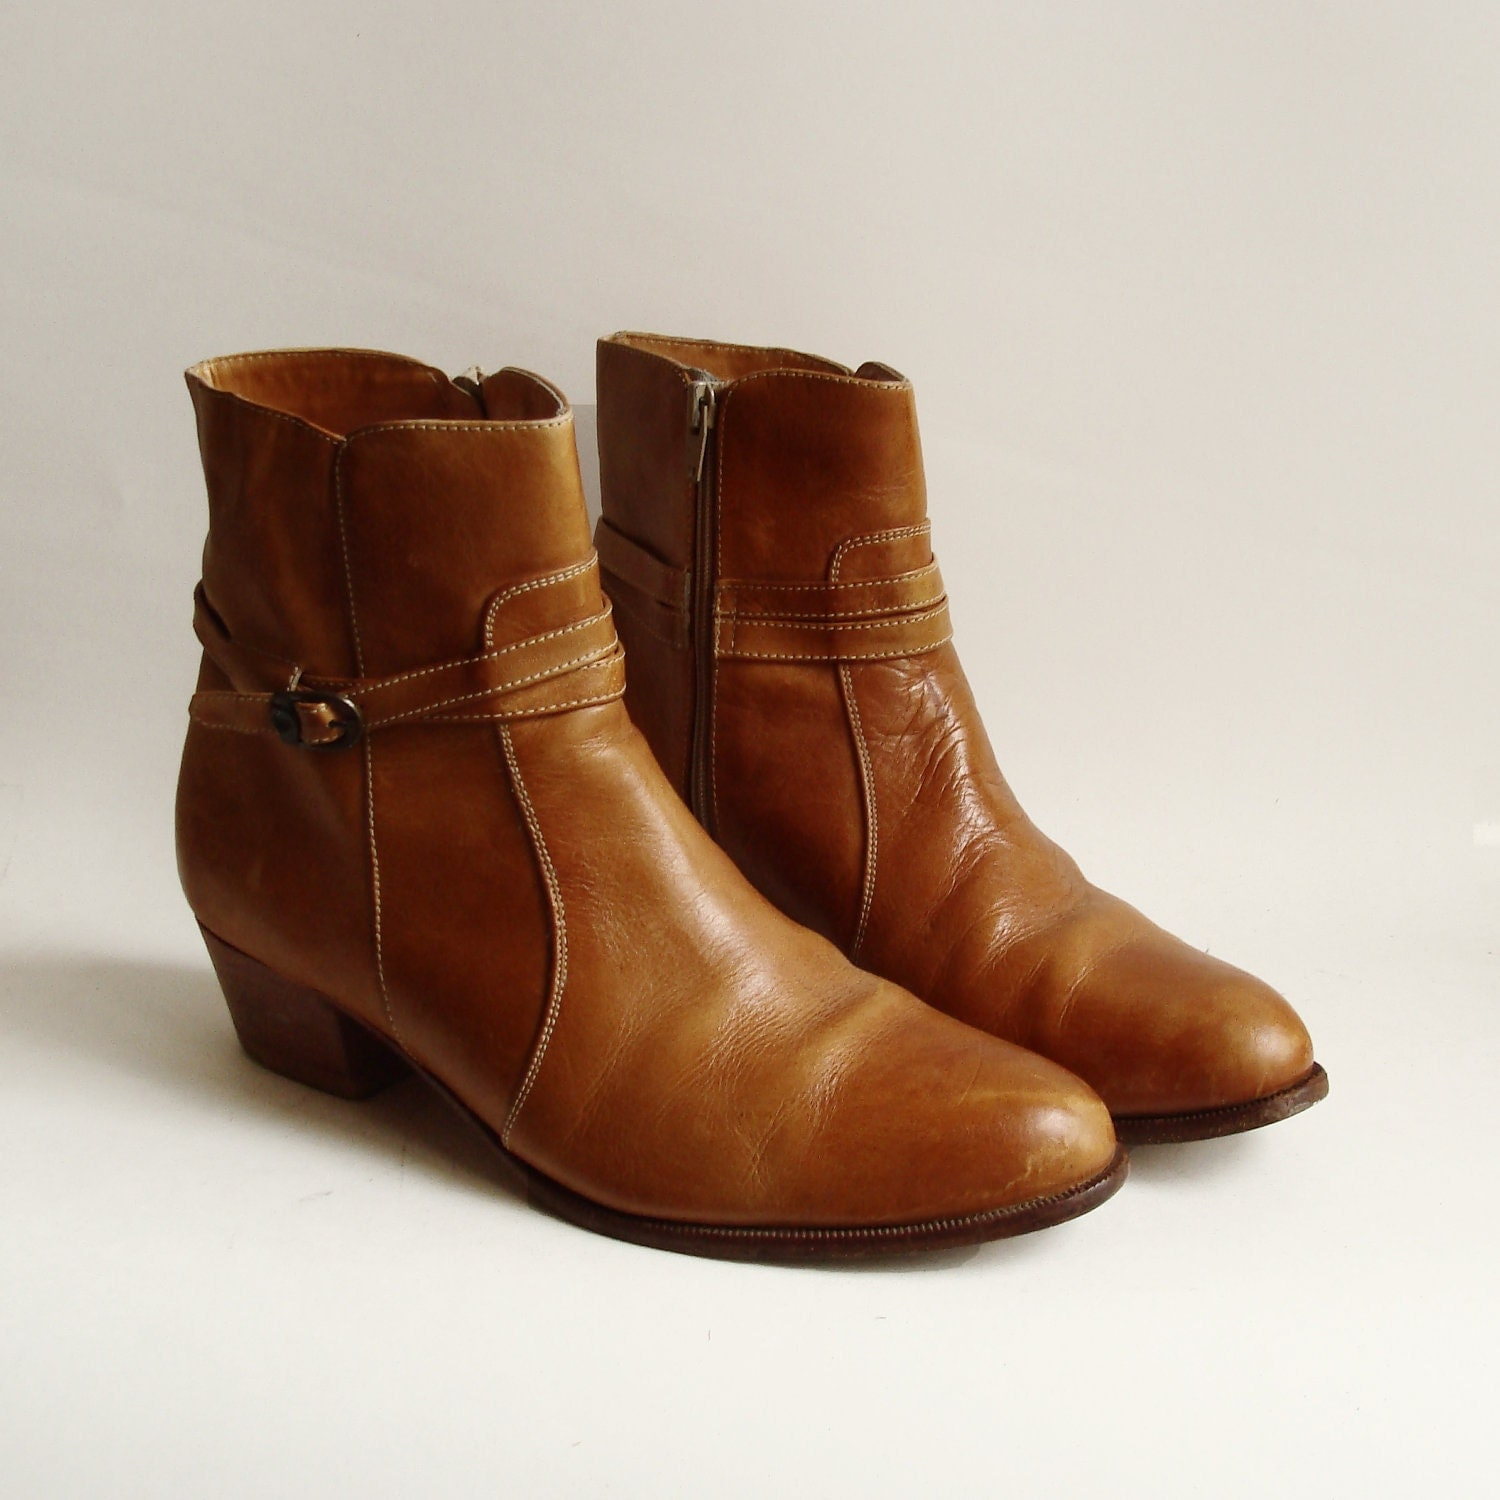 brown leather boots / 1970s leather ankle boots / boots men 9